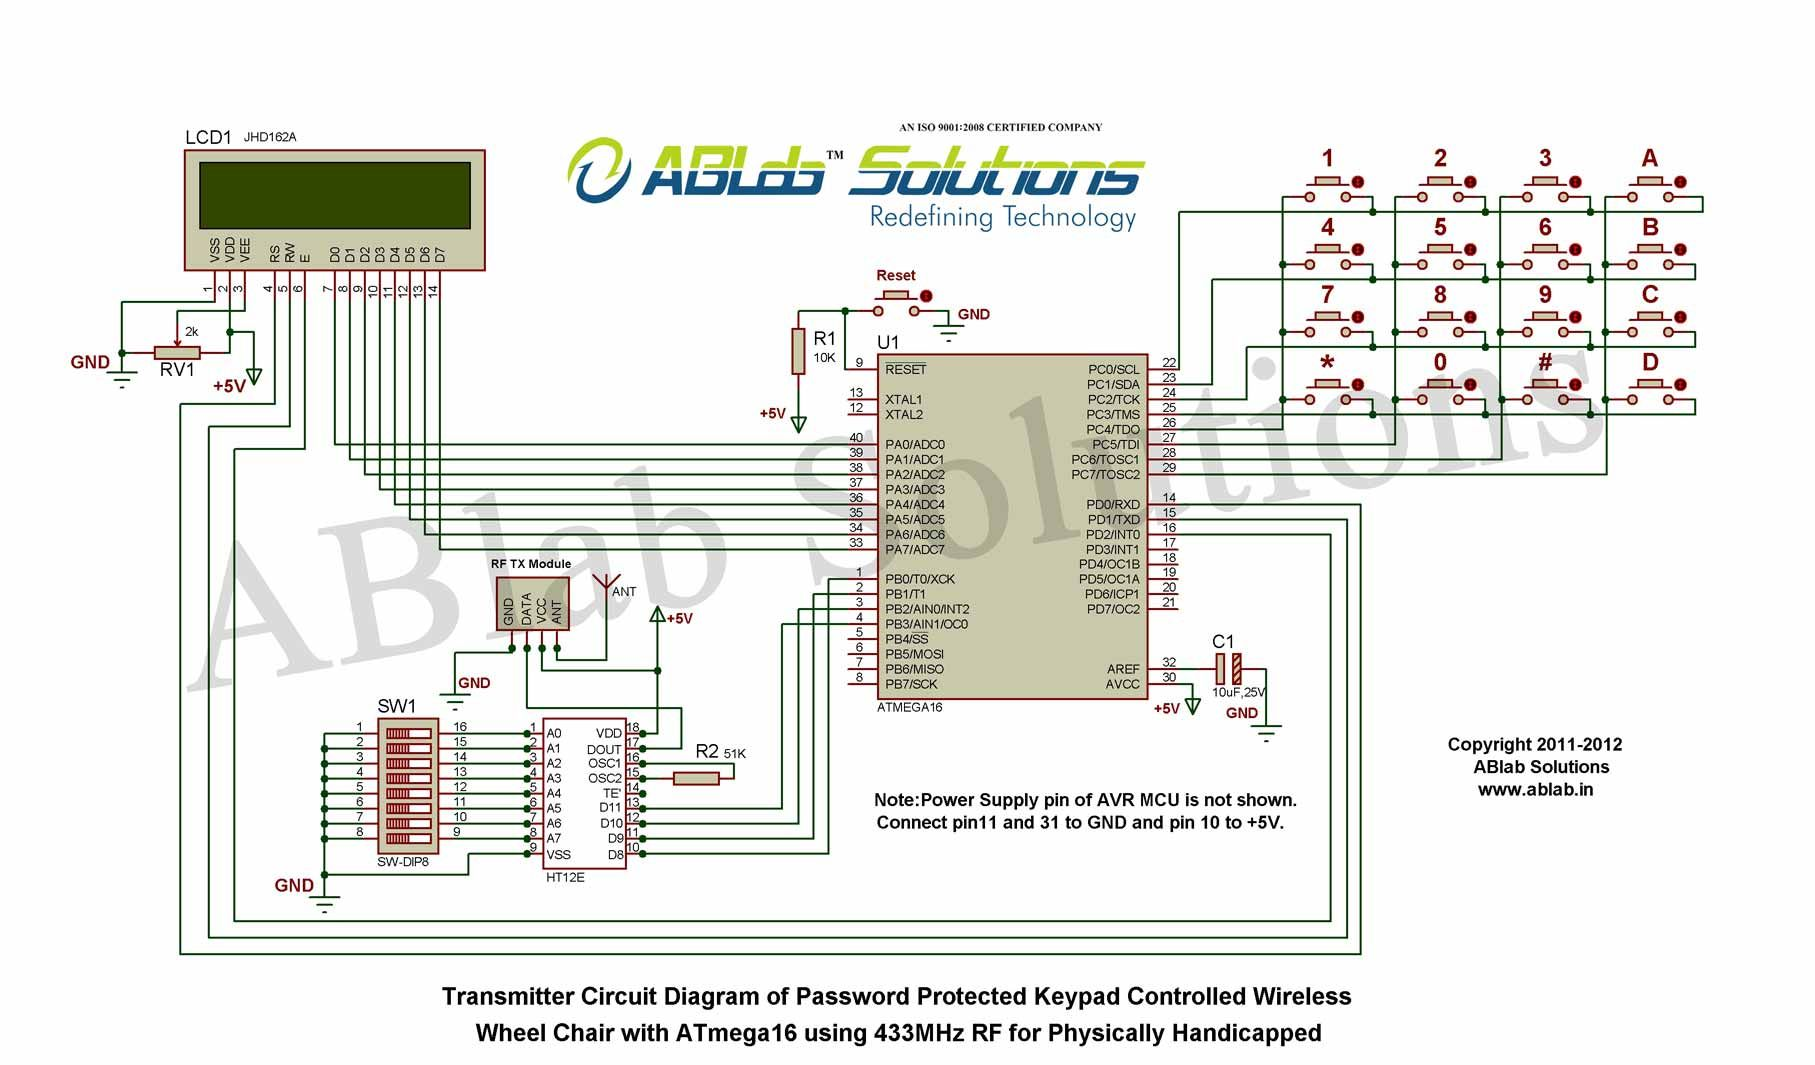 atmega16 microcontroller using 433mhz rf for physically handicapped transmitter circuit diagram [ 1815 x 1065 Pixel ]